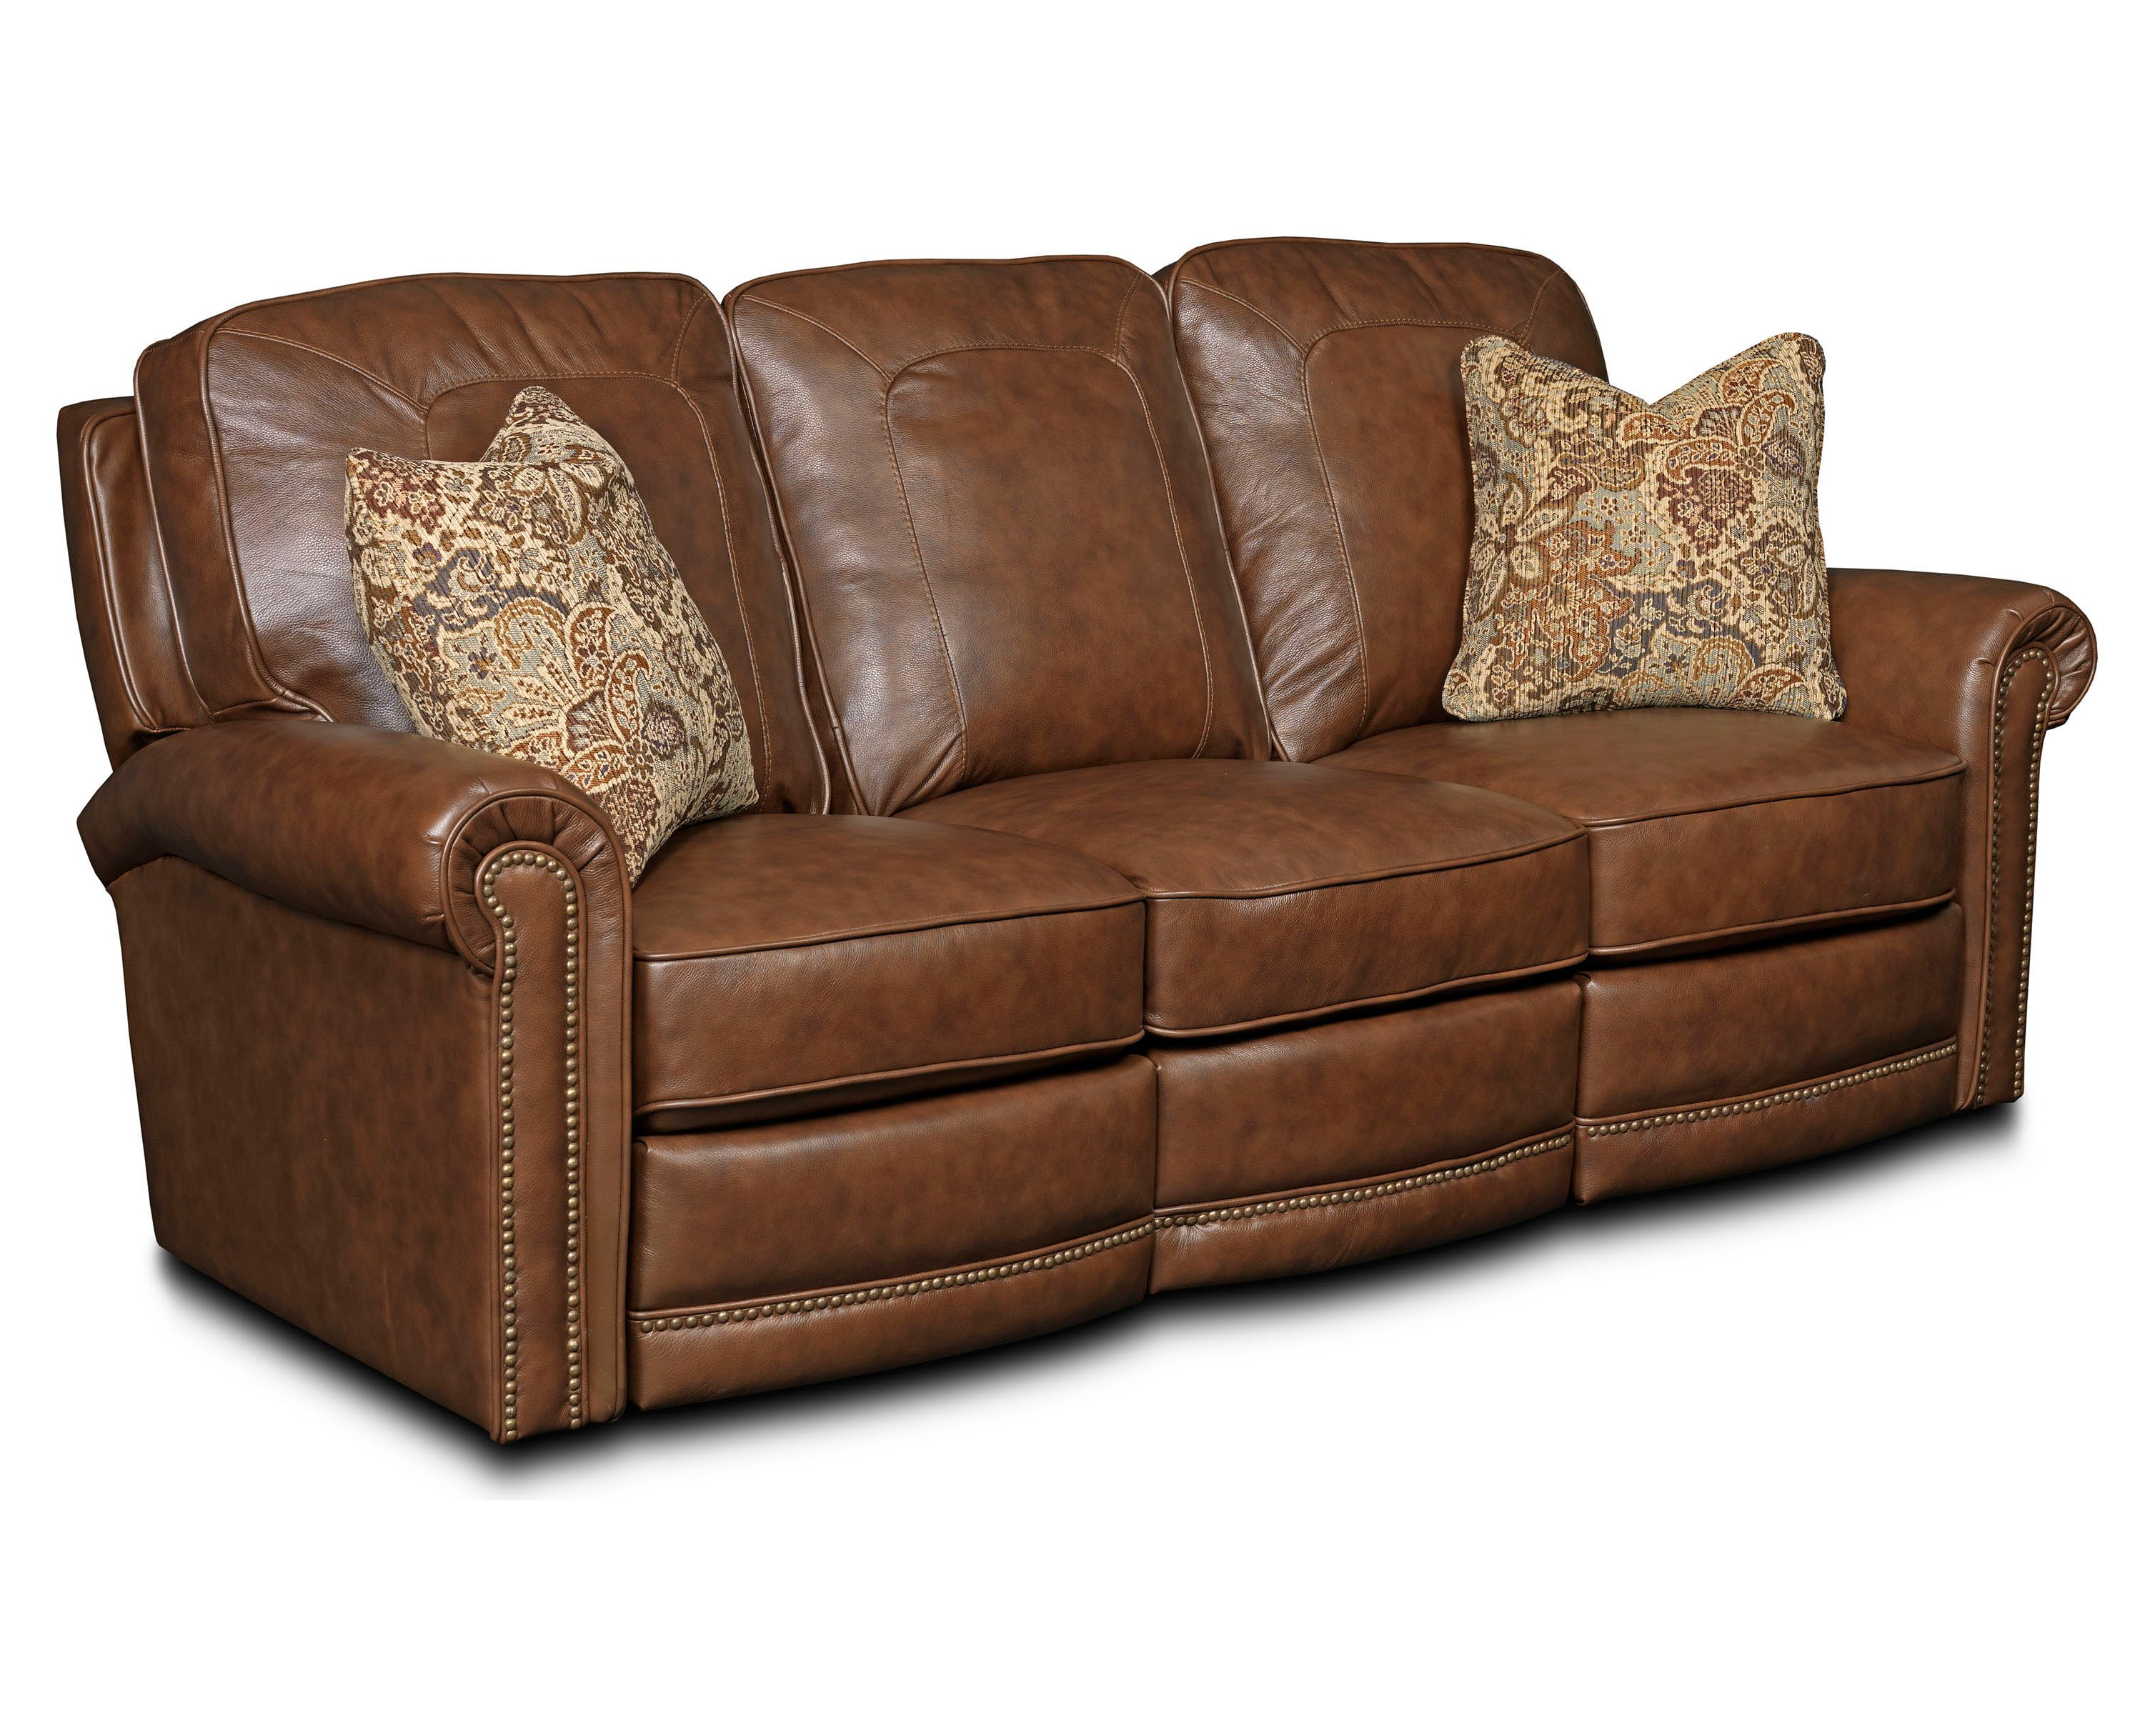 Leather Sofa Recliner | Ethan Allen Sofa | Ethan Allen Recliners